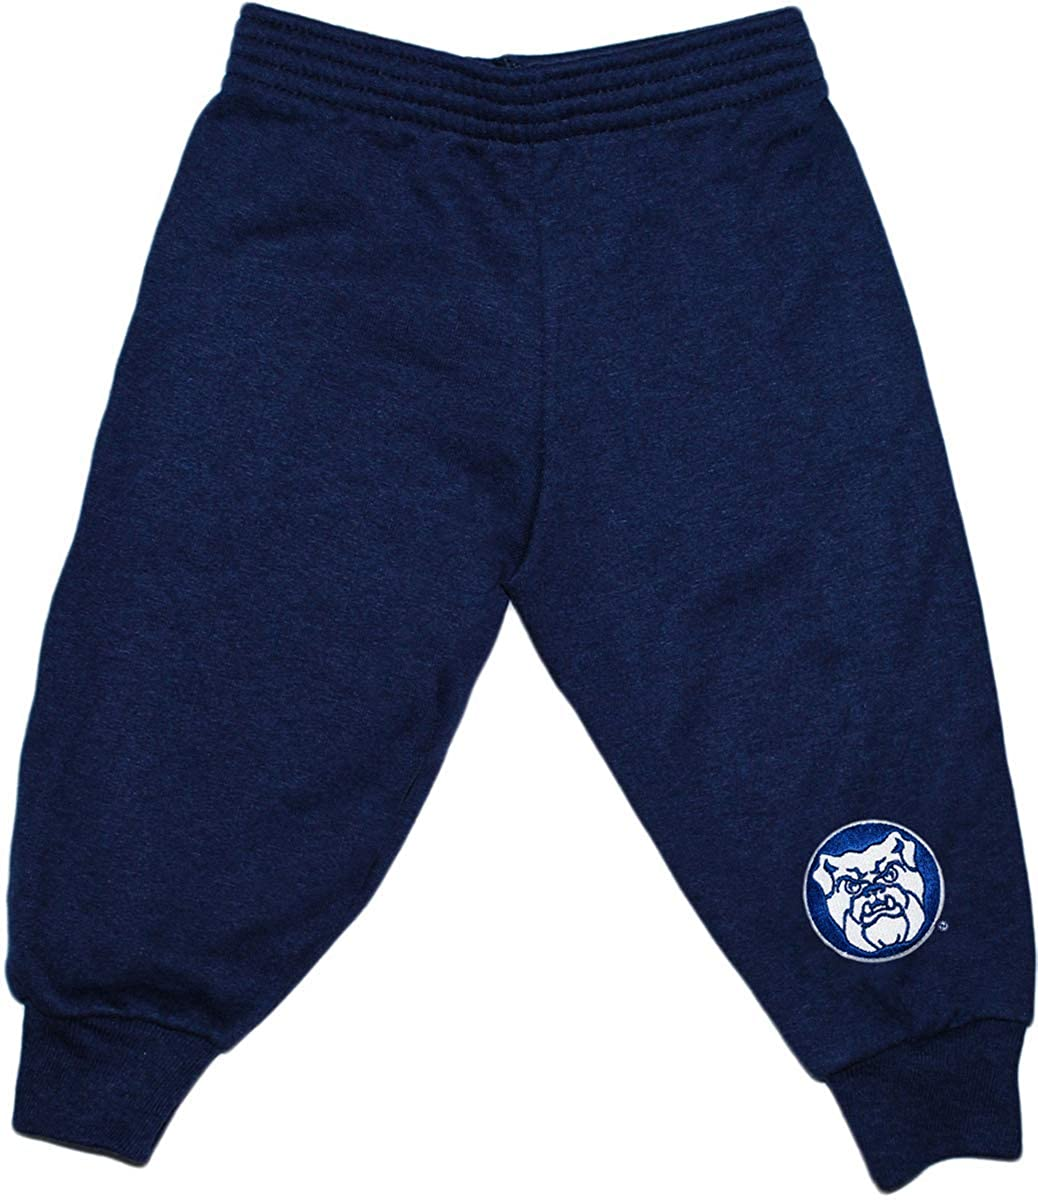 Creative Knitwear Butler University Baby and Toddler Sweat Pants